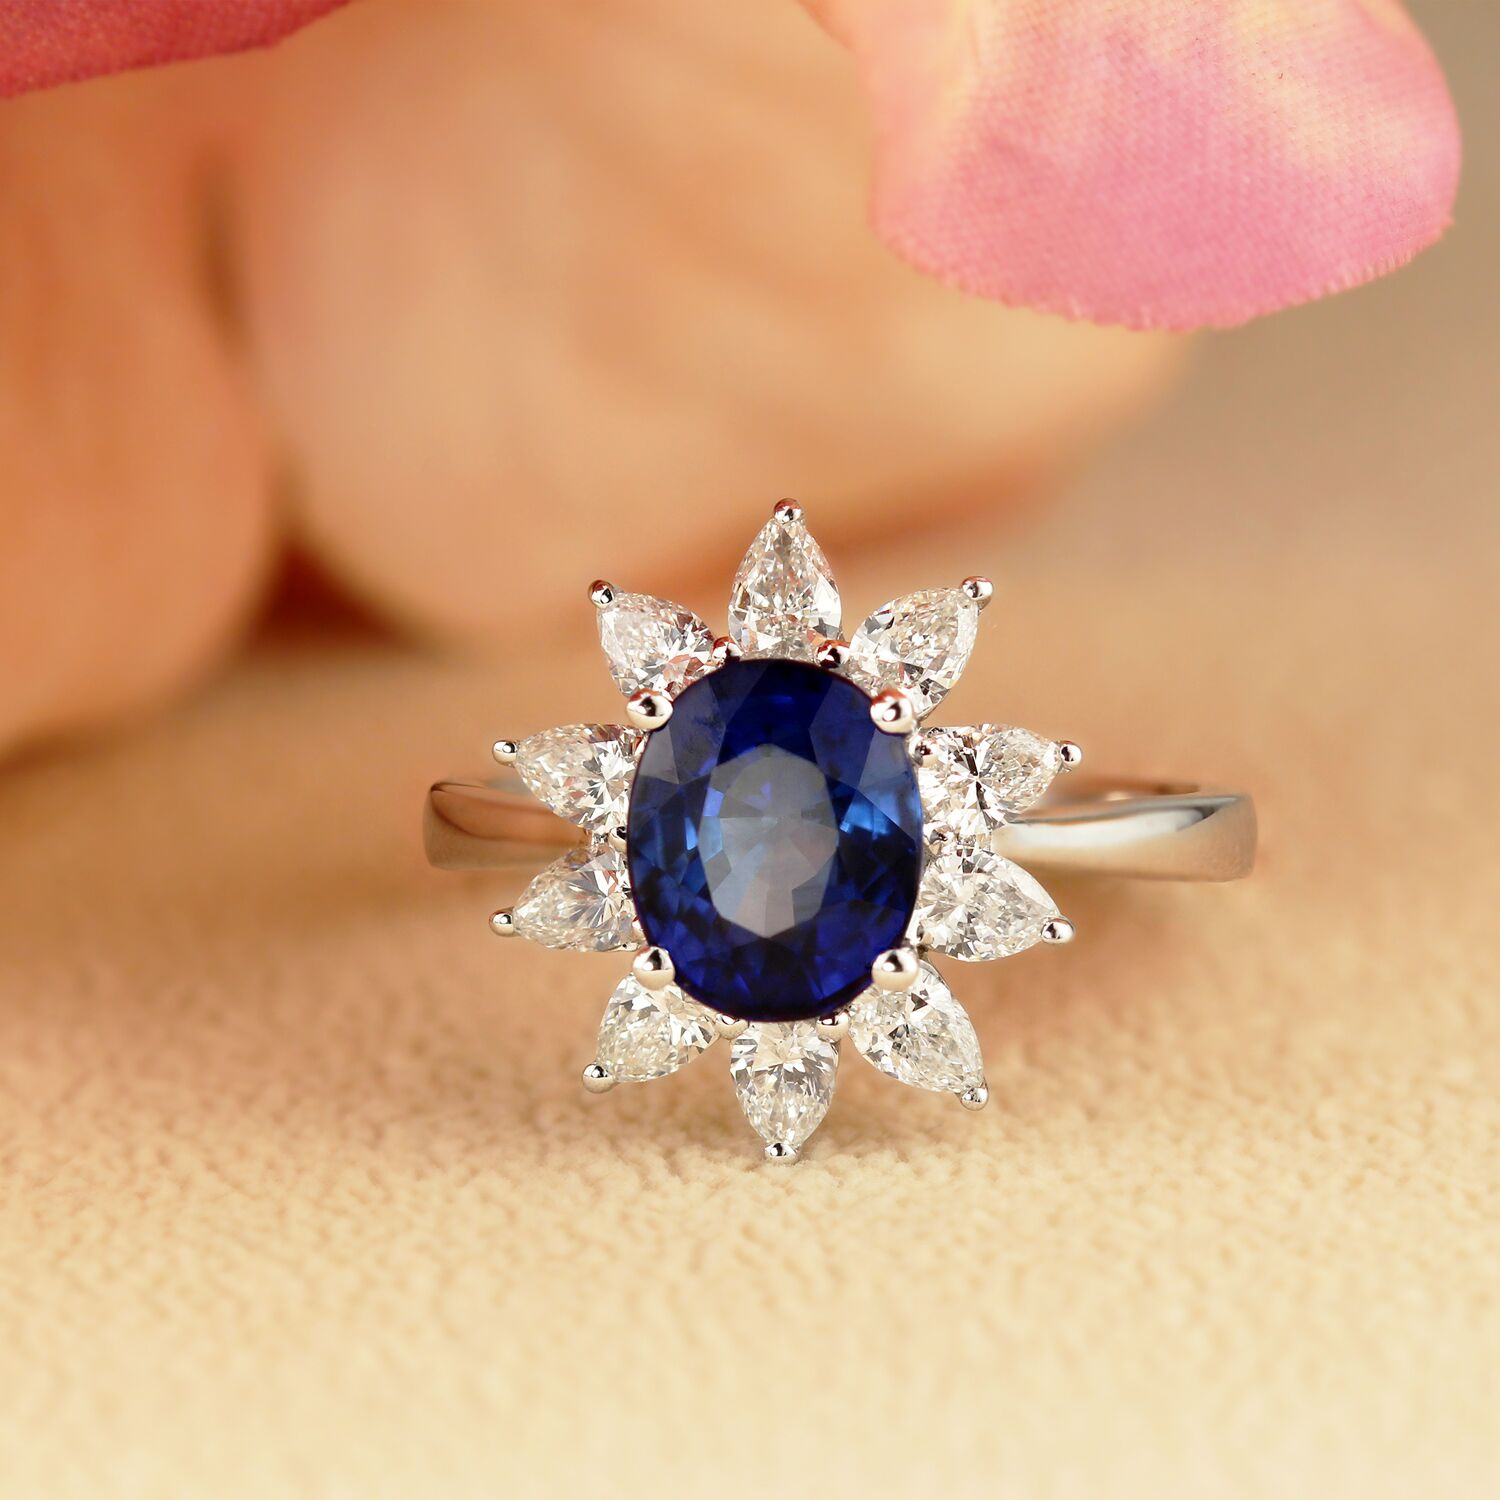 Tips to Select This Unique Gemstone: The Stunning Sapphire Ring